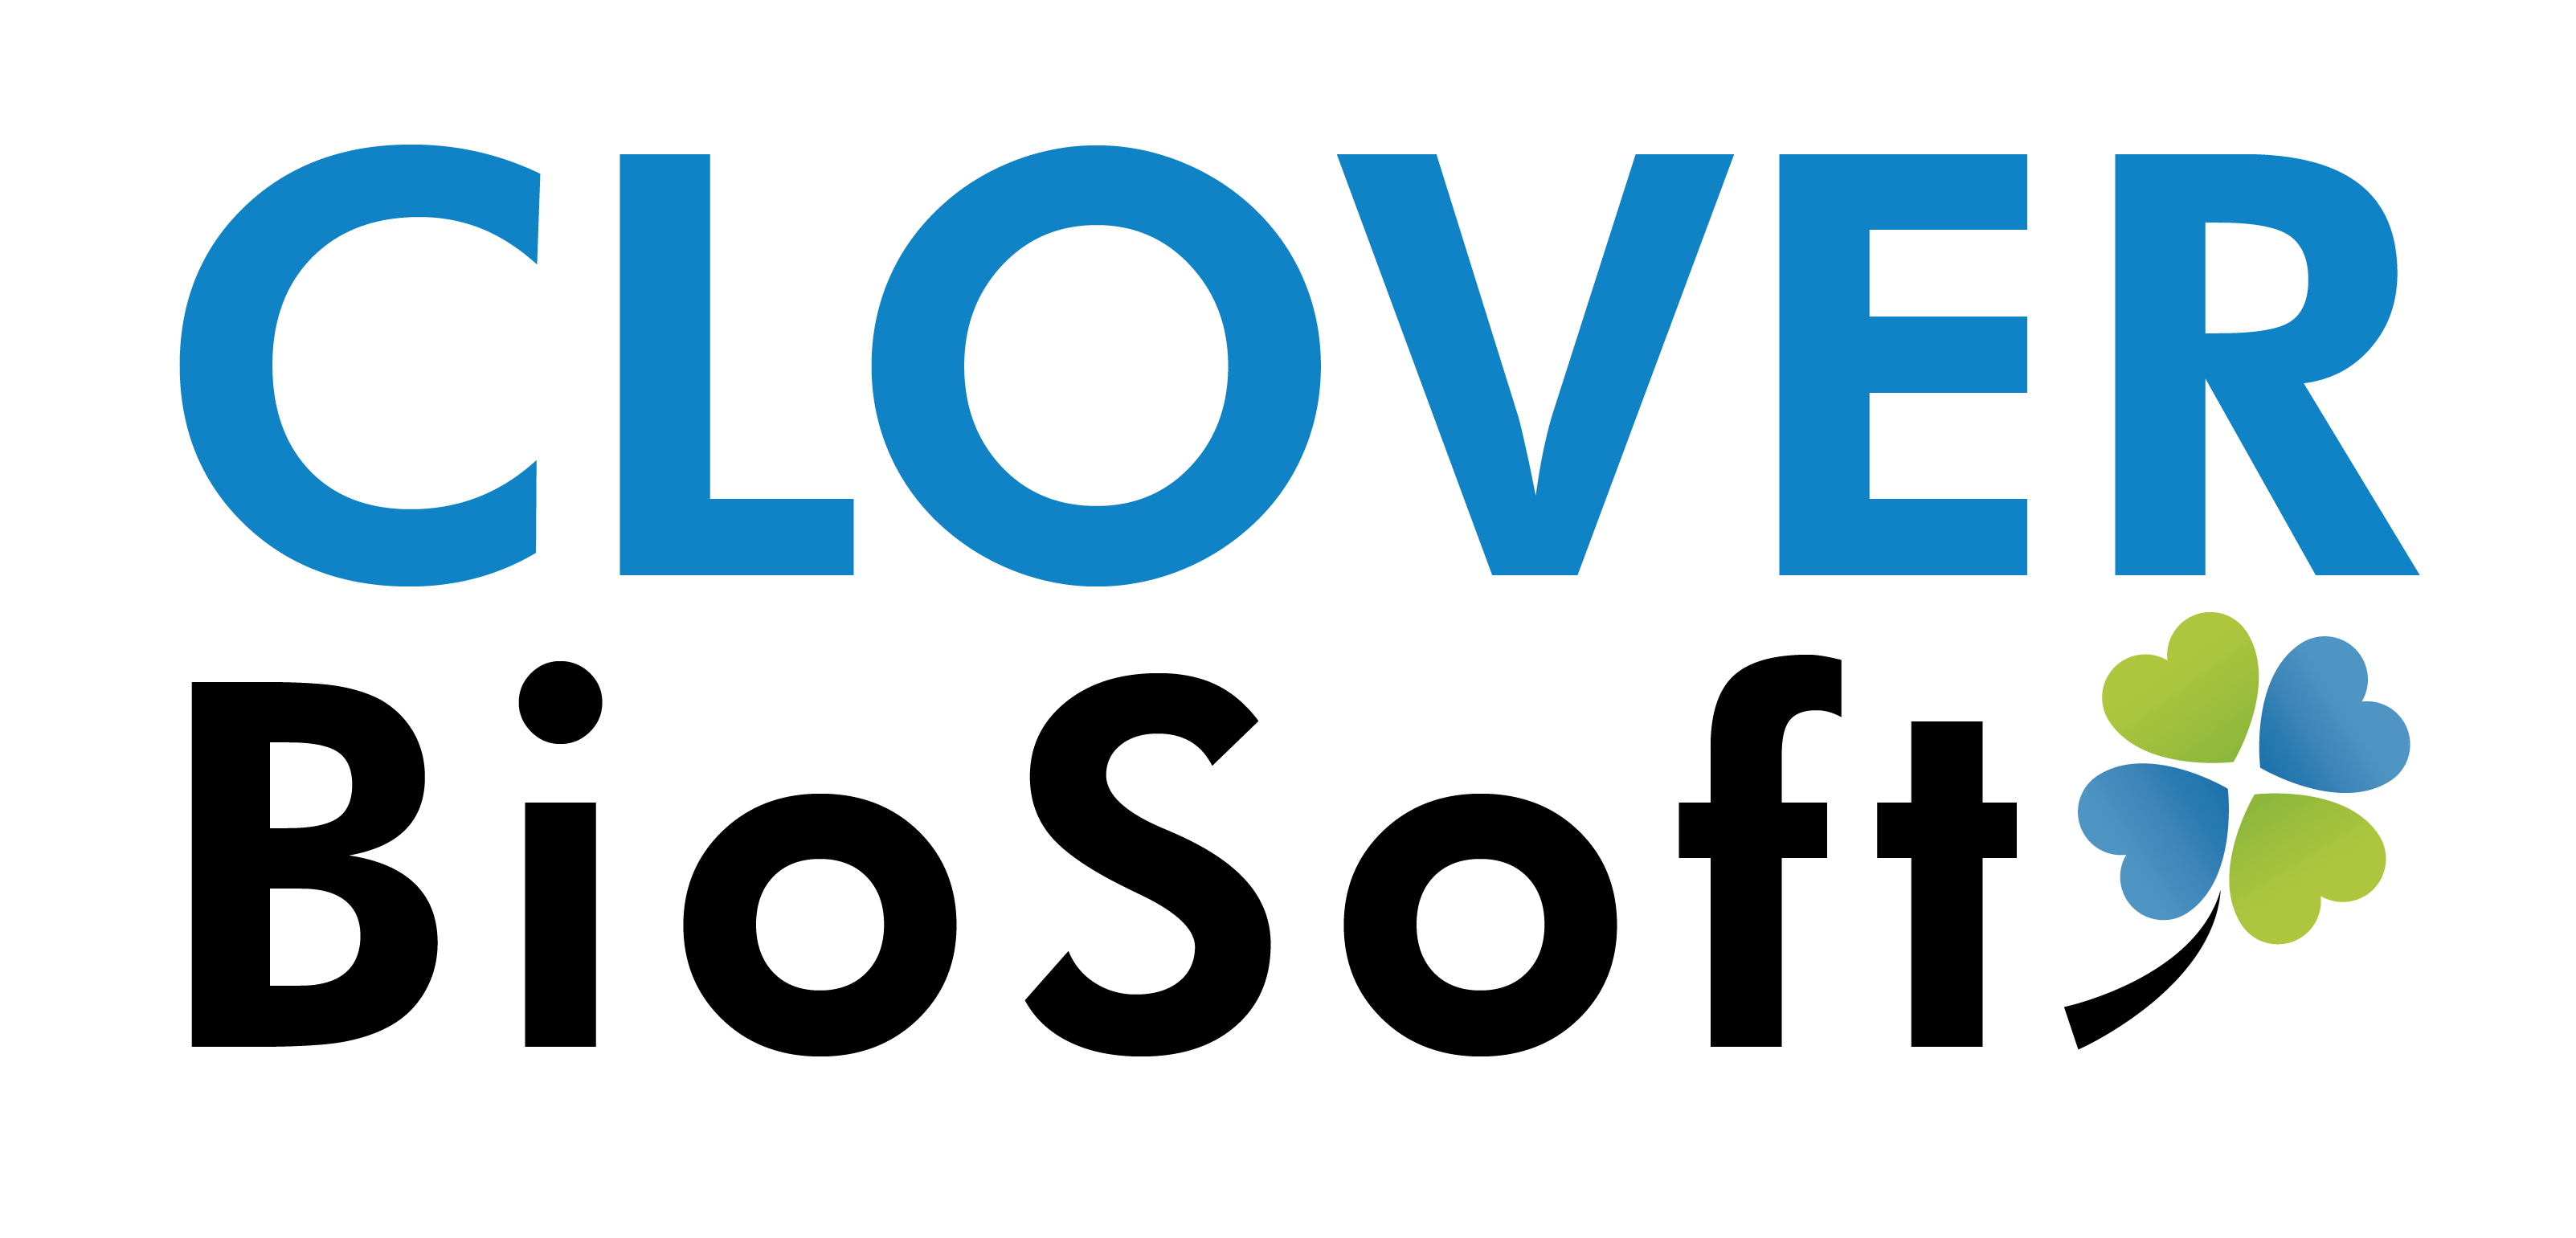 CLOVERBioSoft full logo big